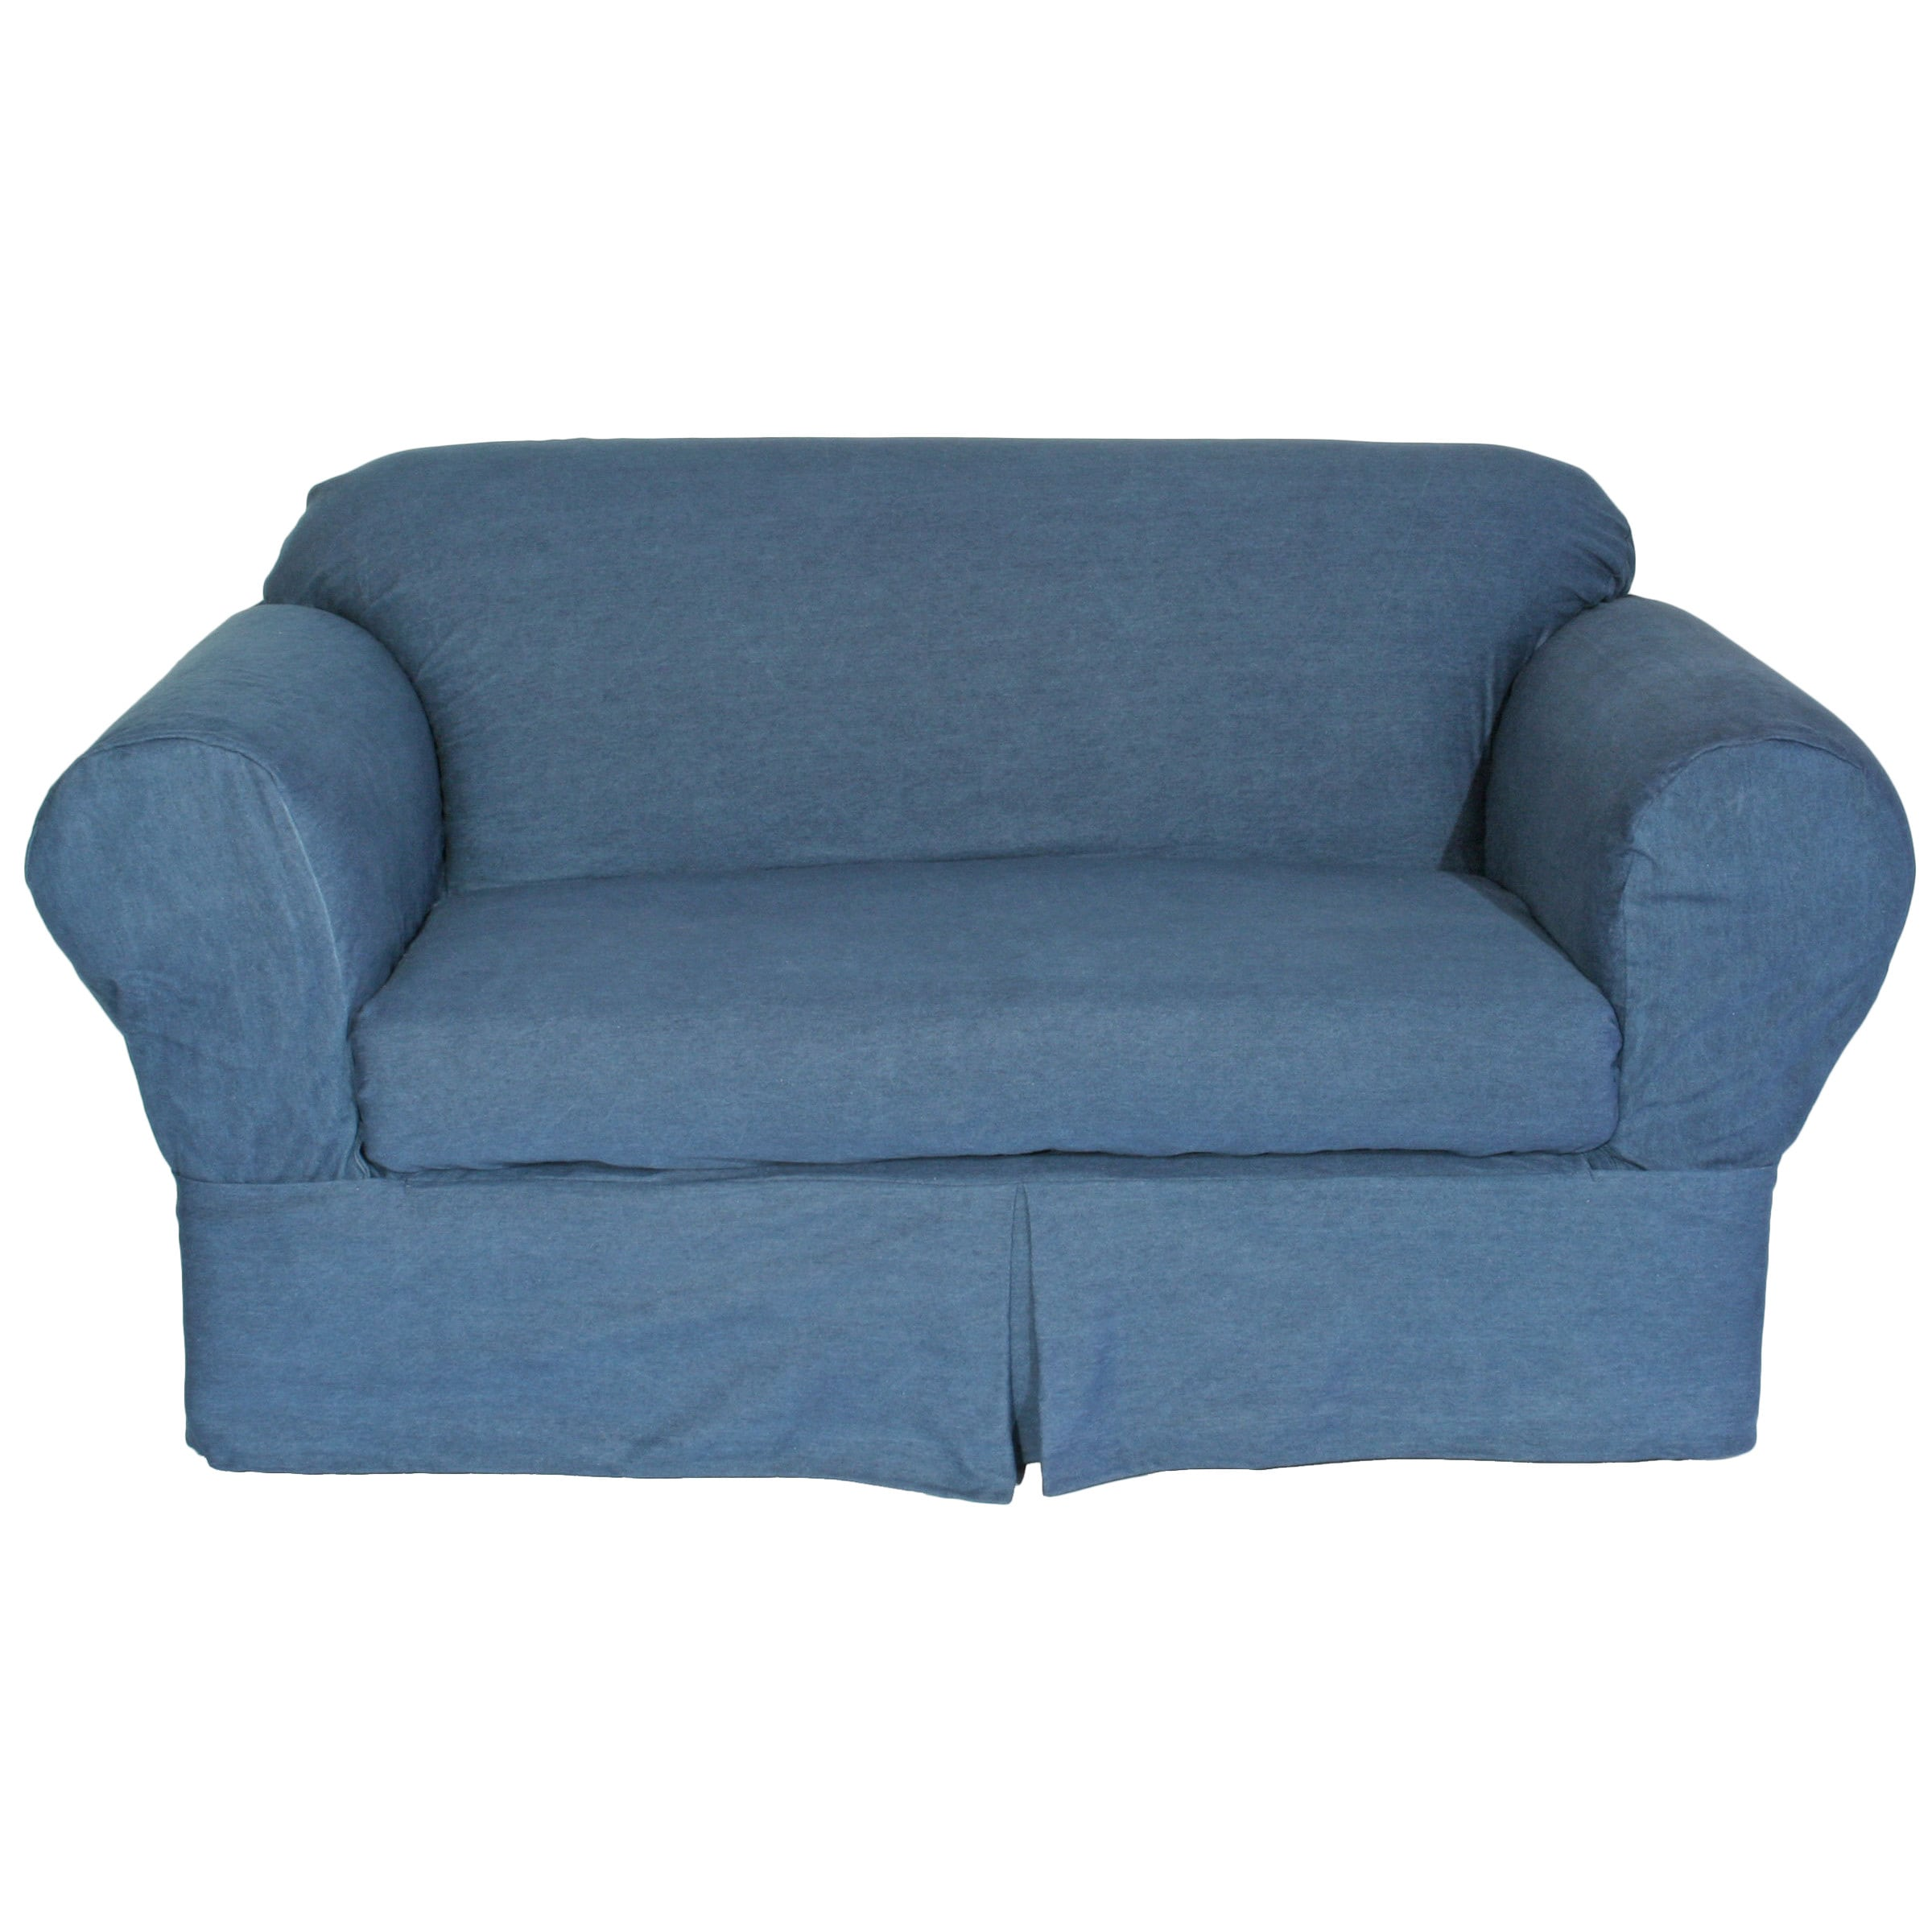 Washed Heavy Denim Cotton 2 Piece Loveseat Slipcover On Sale Overstock 11417144